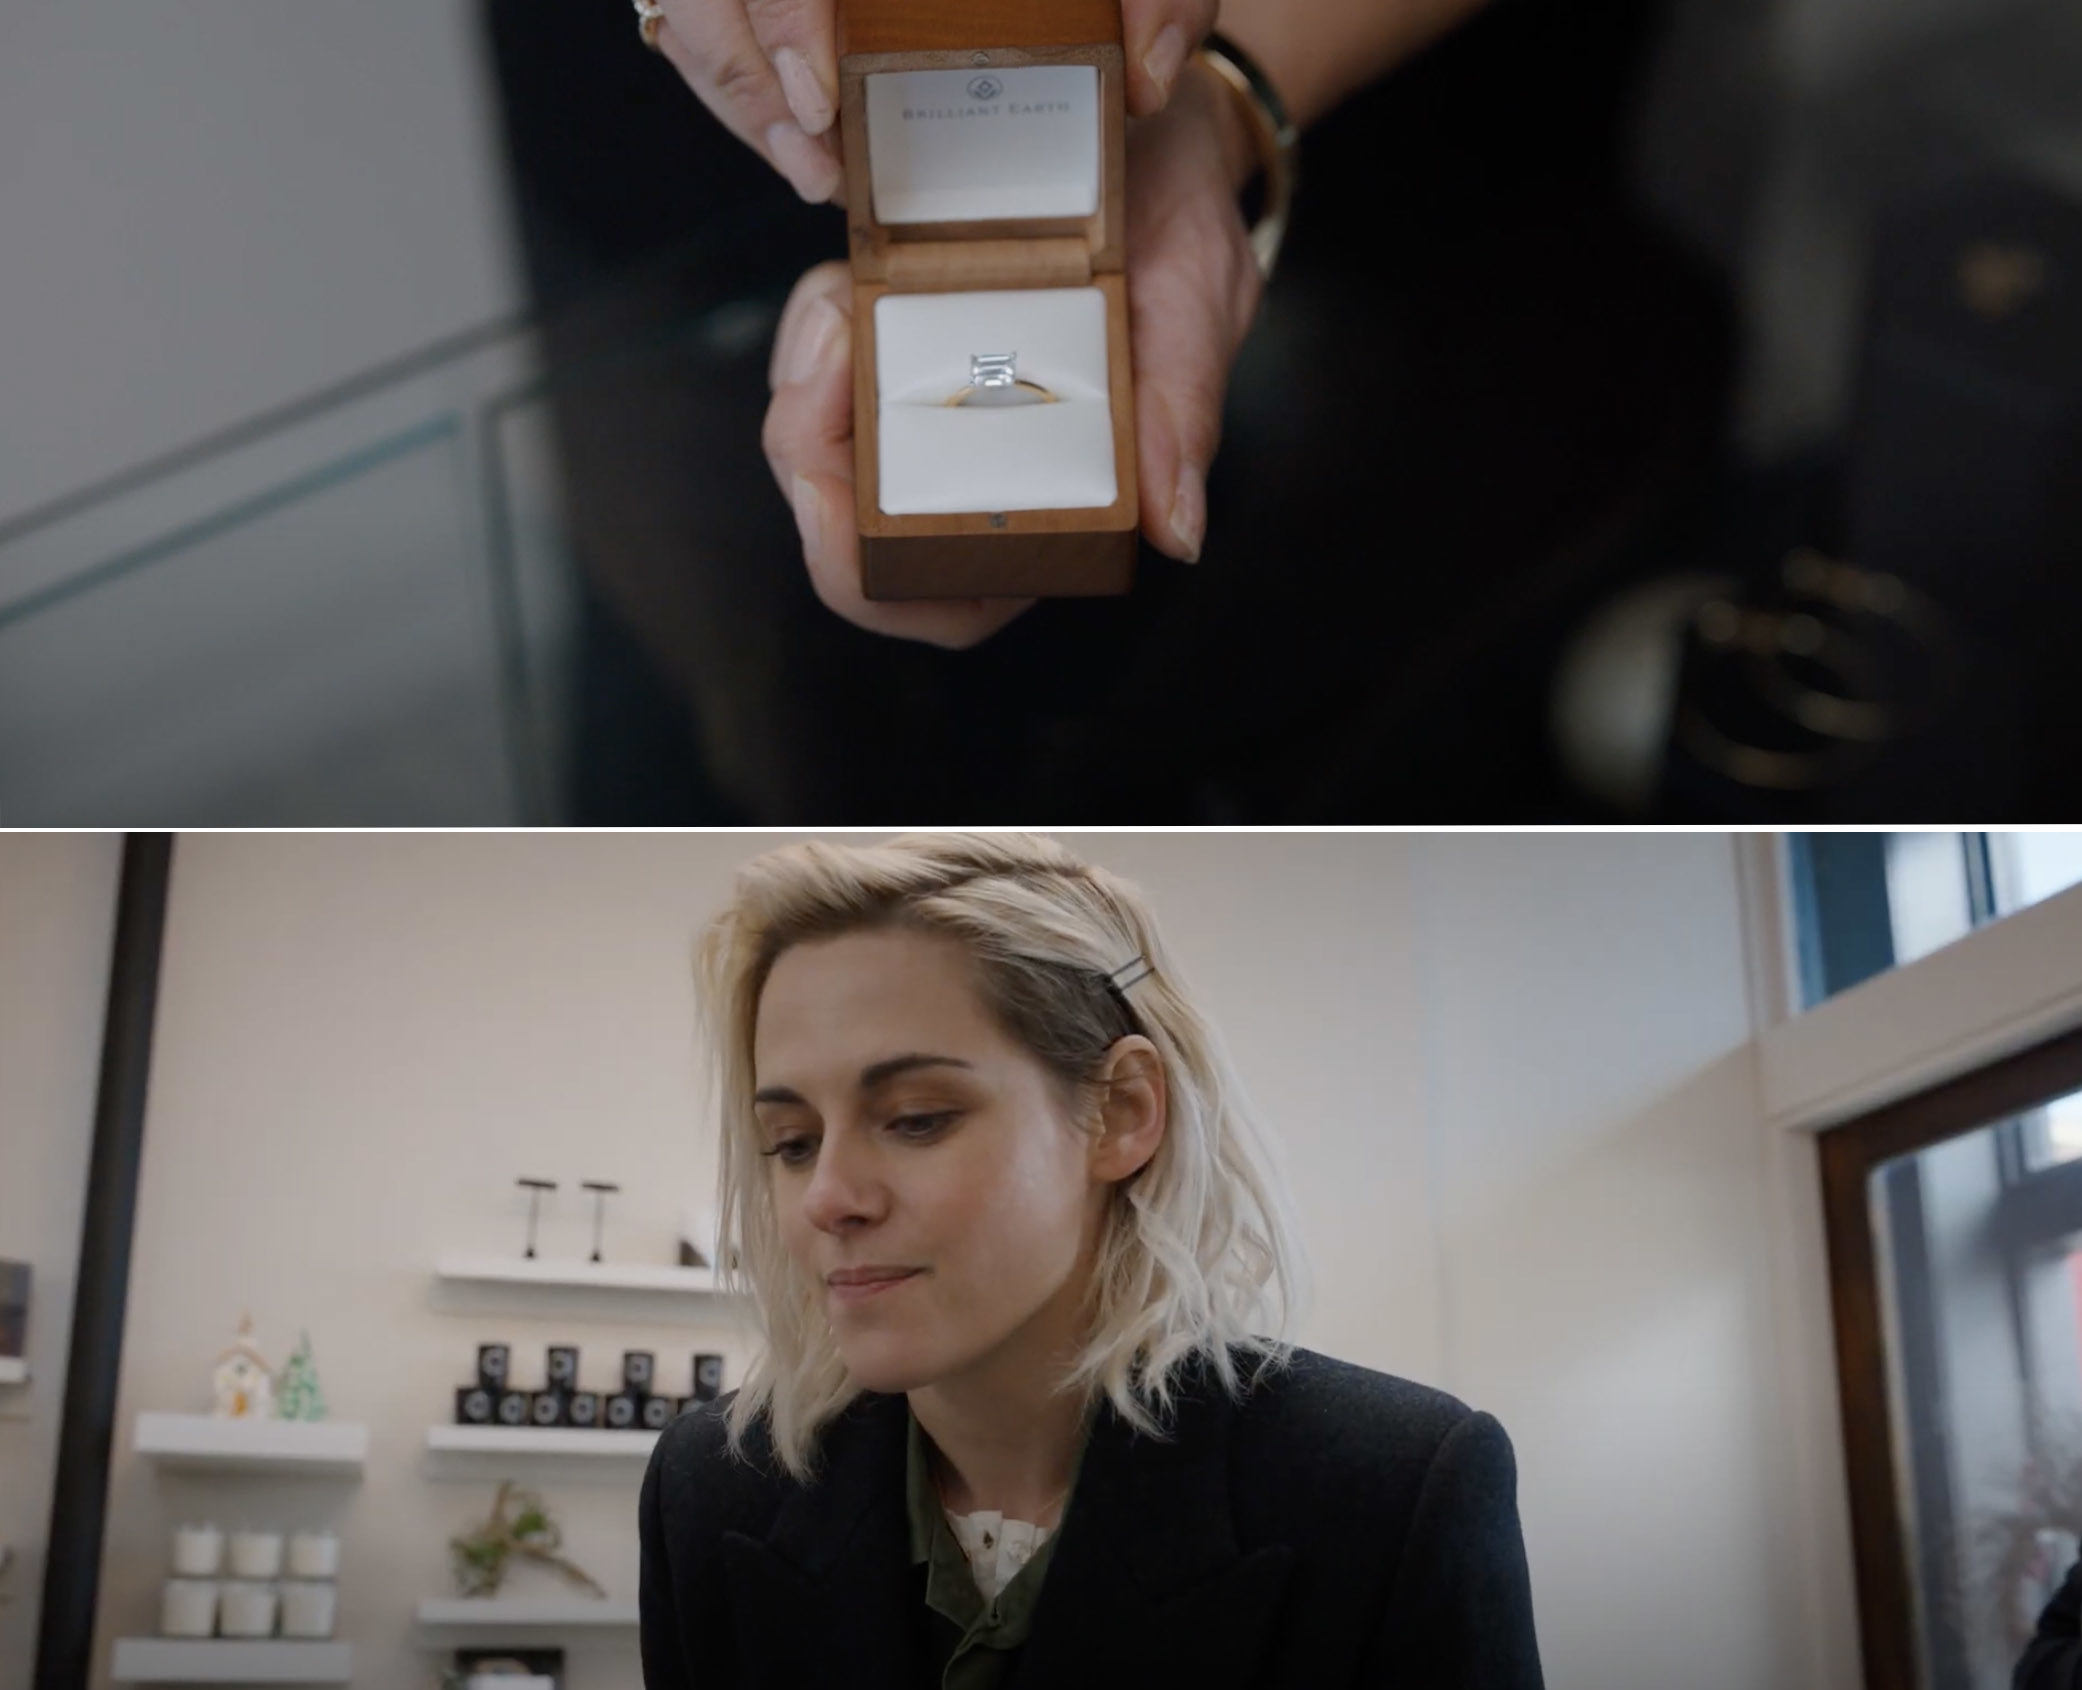 The ring Abby is going to propose with